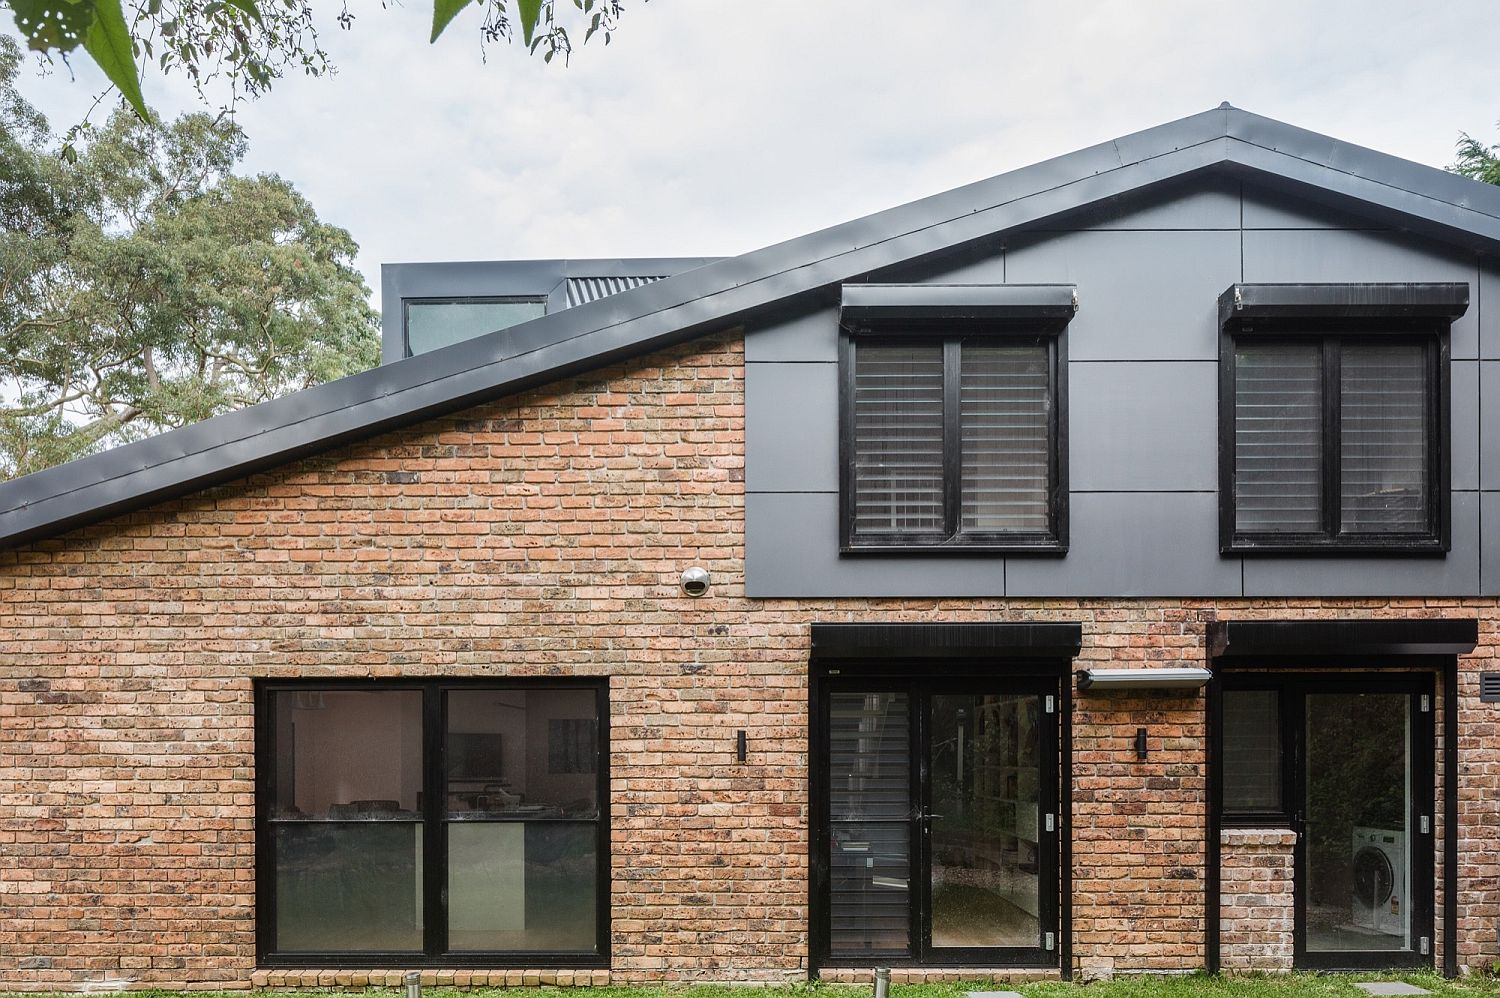 Modern addition to the 1970s brick house Down Under